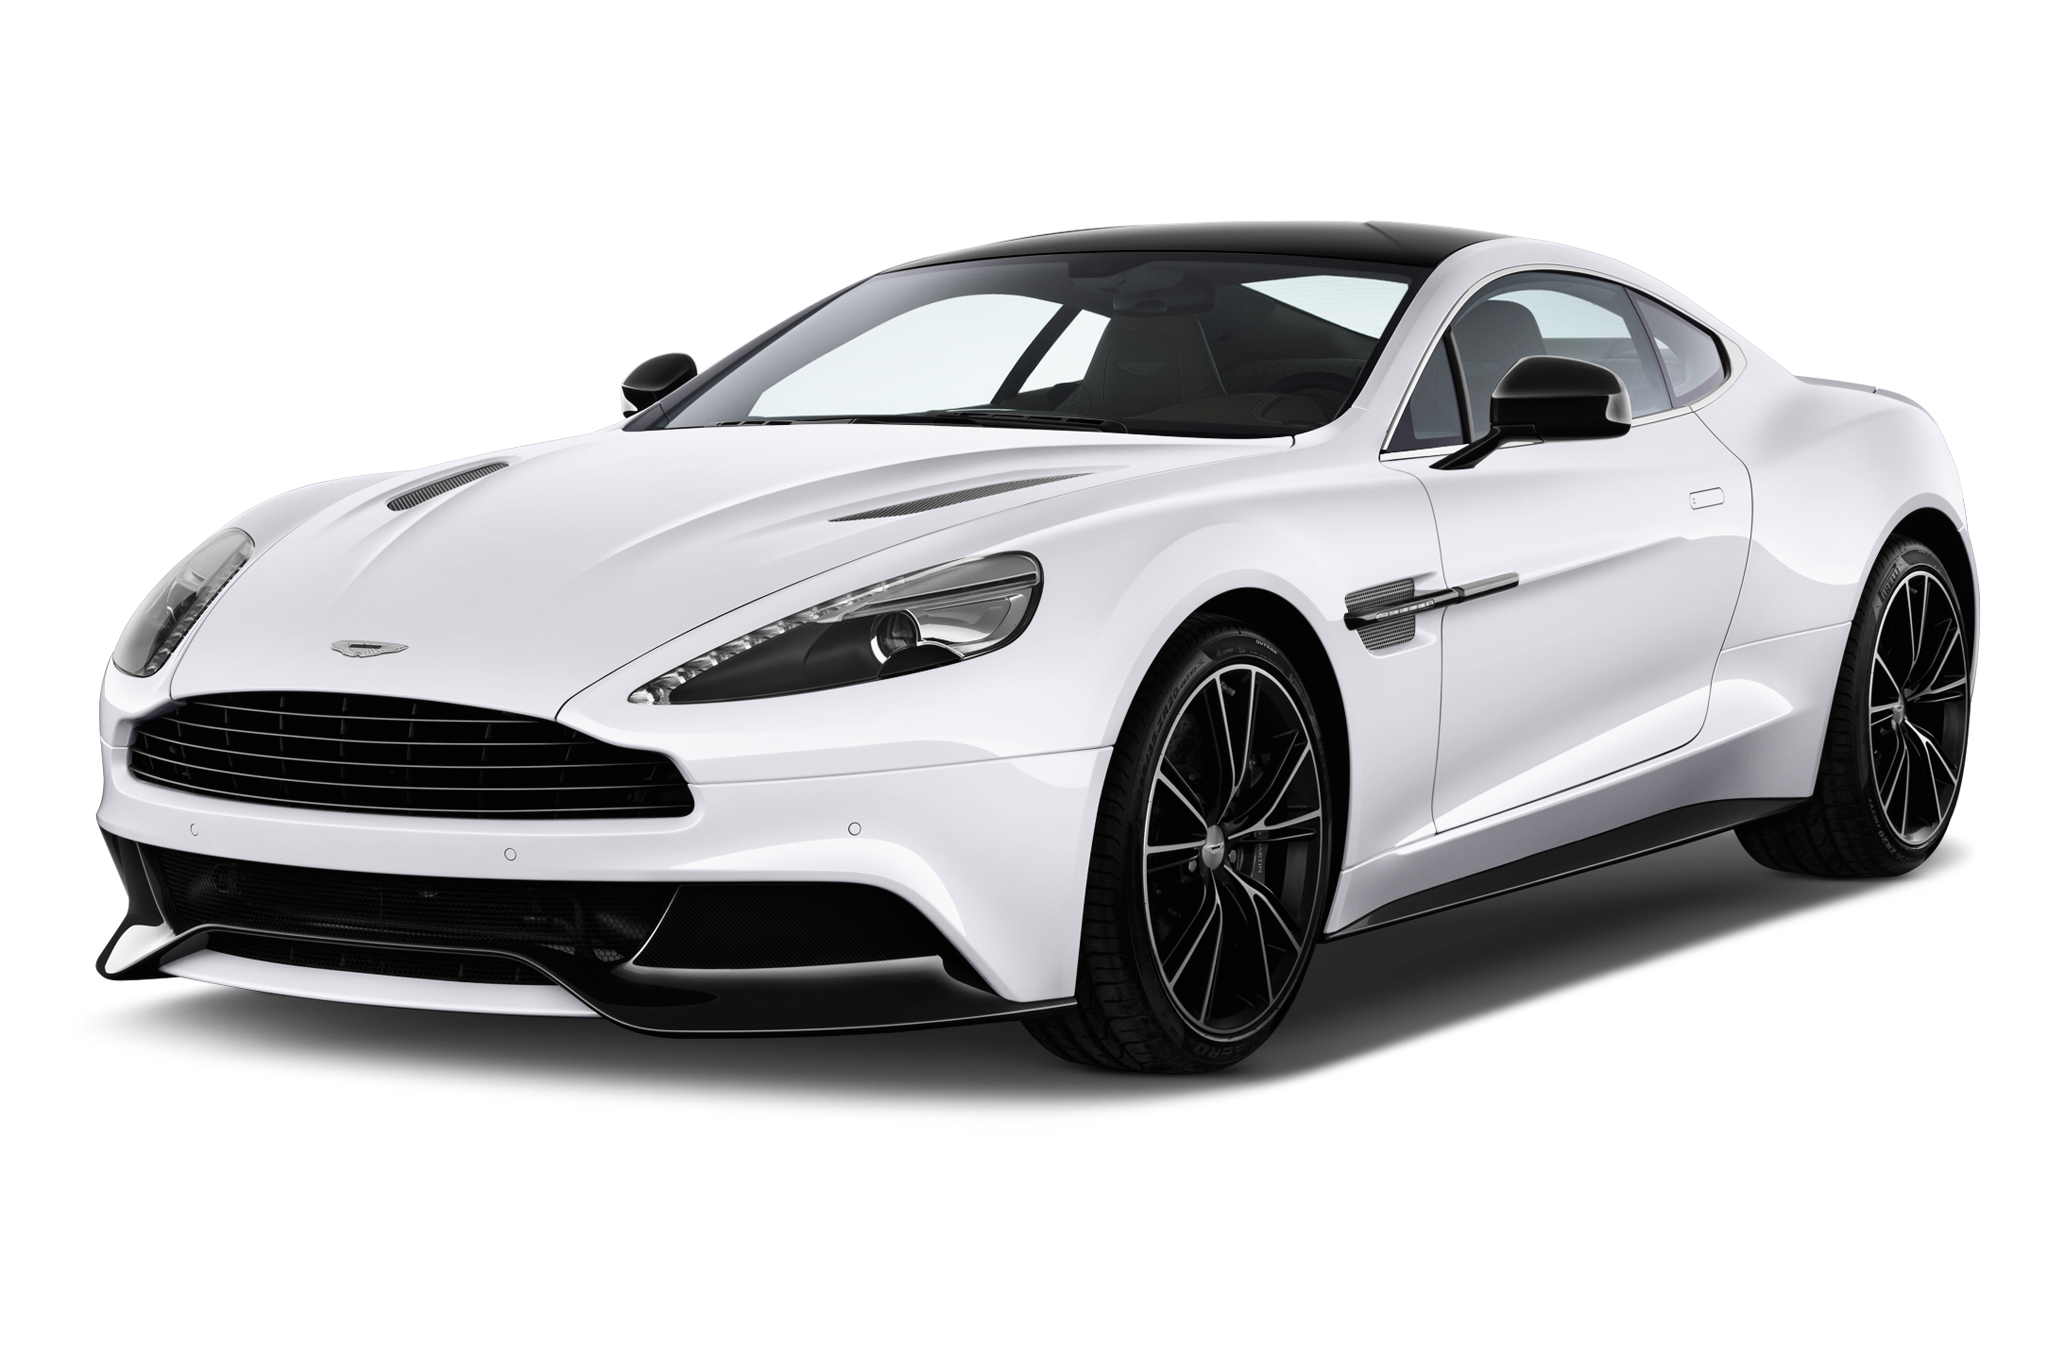 2016 aston martin vanquish reviews and rating | motortrend